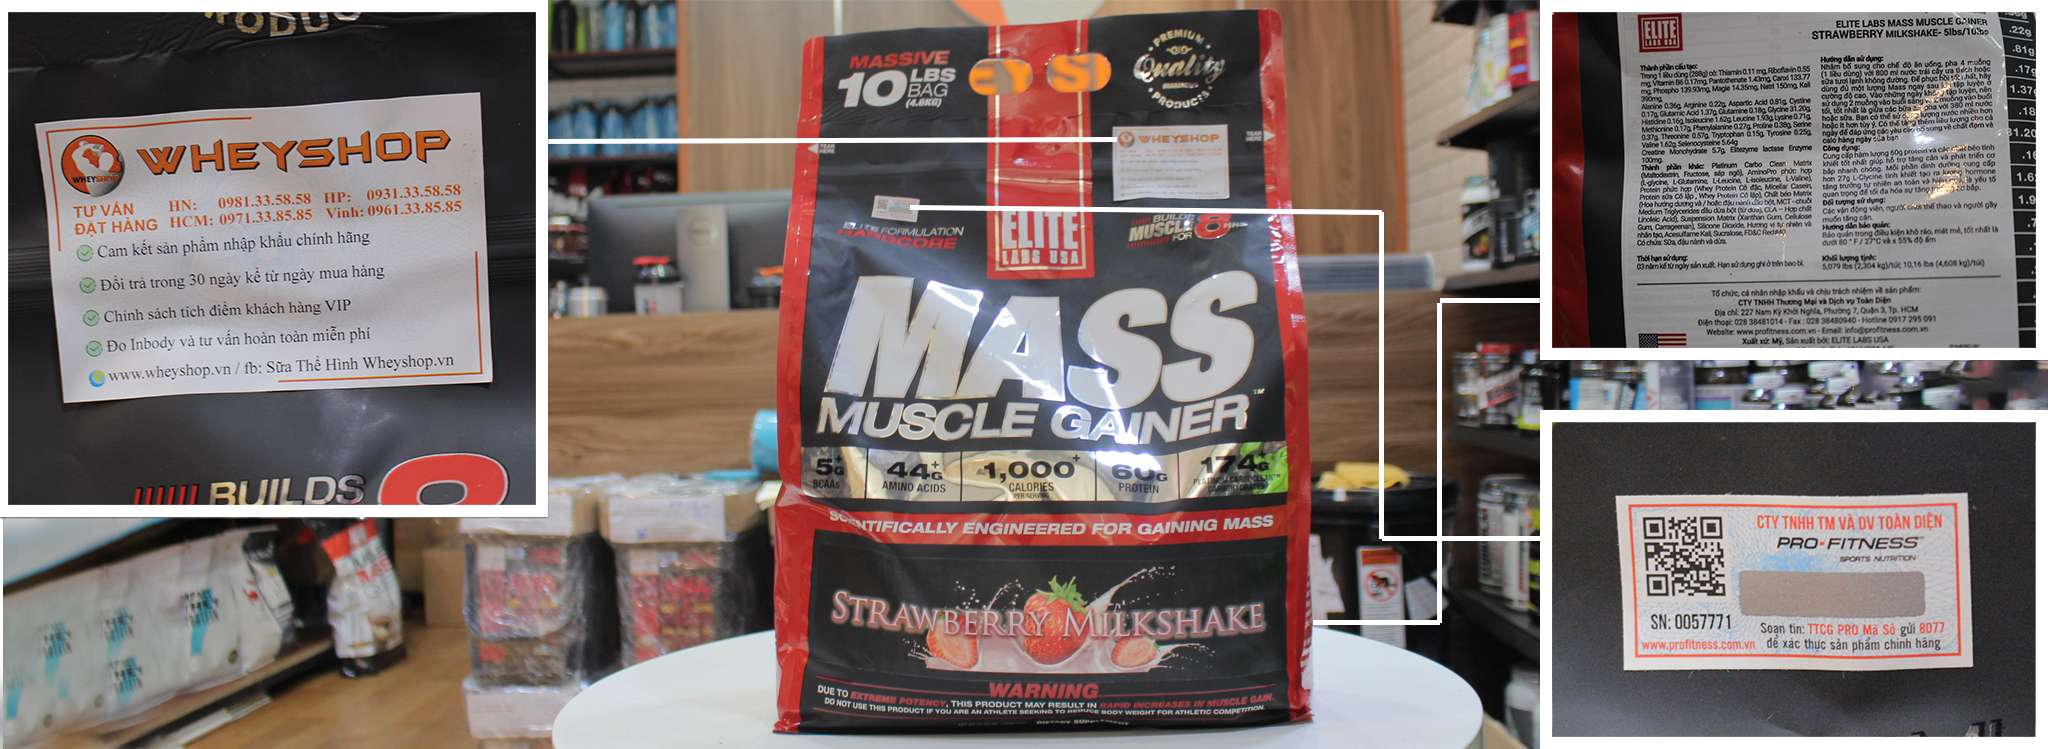 mass muscle gainer 10lbs gia re ha noi tphcm